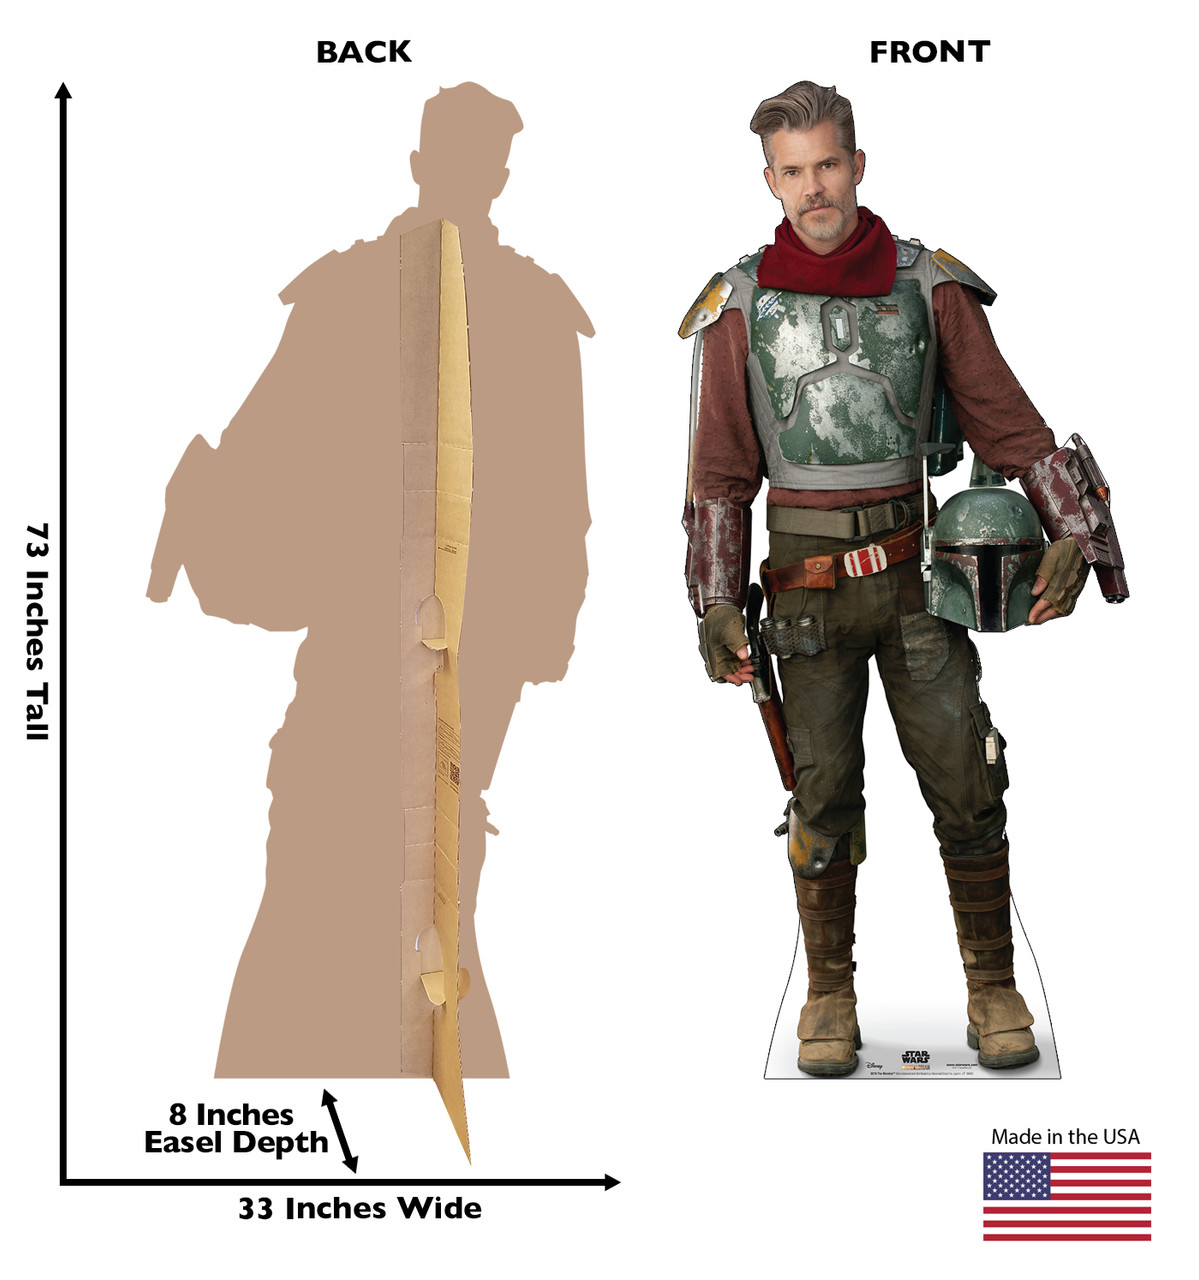 Life-size cardboard standee of The Marshal from the Mandalorian season 2 with back and front dimensions.